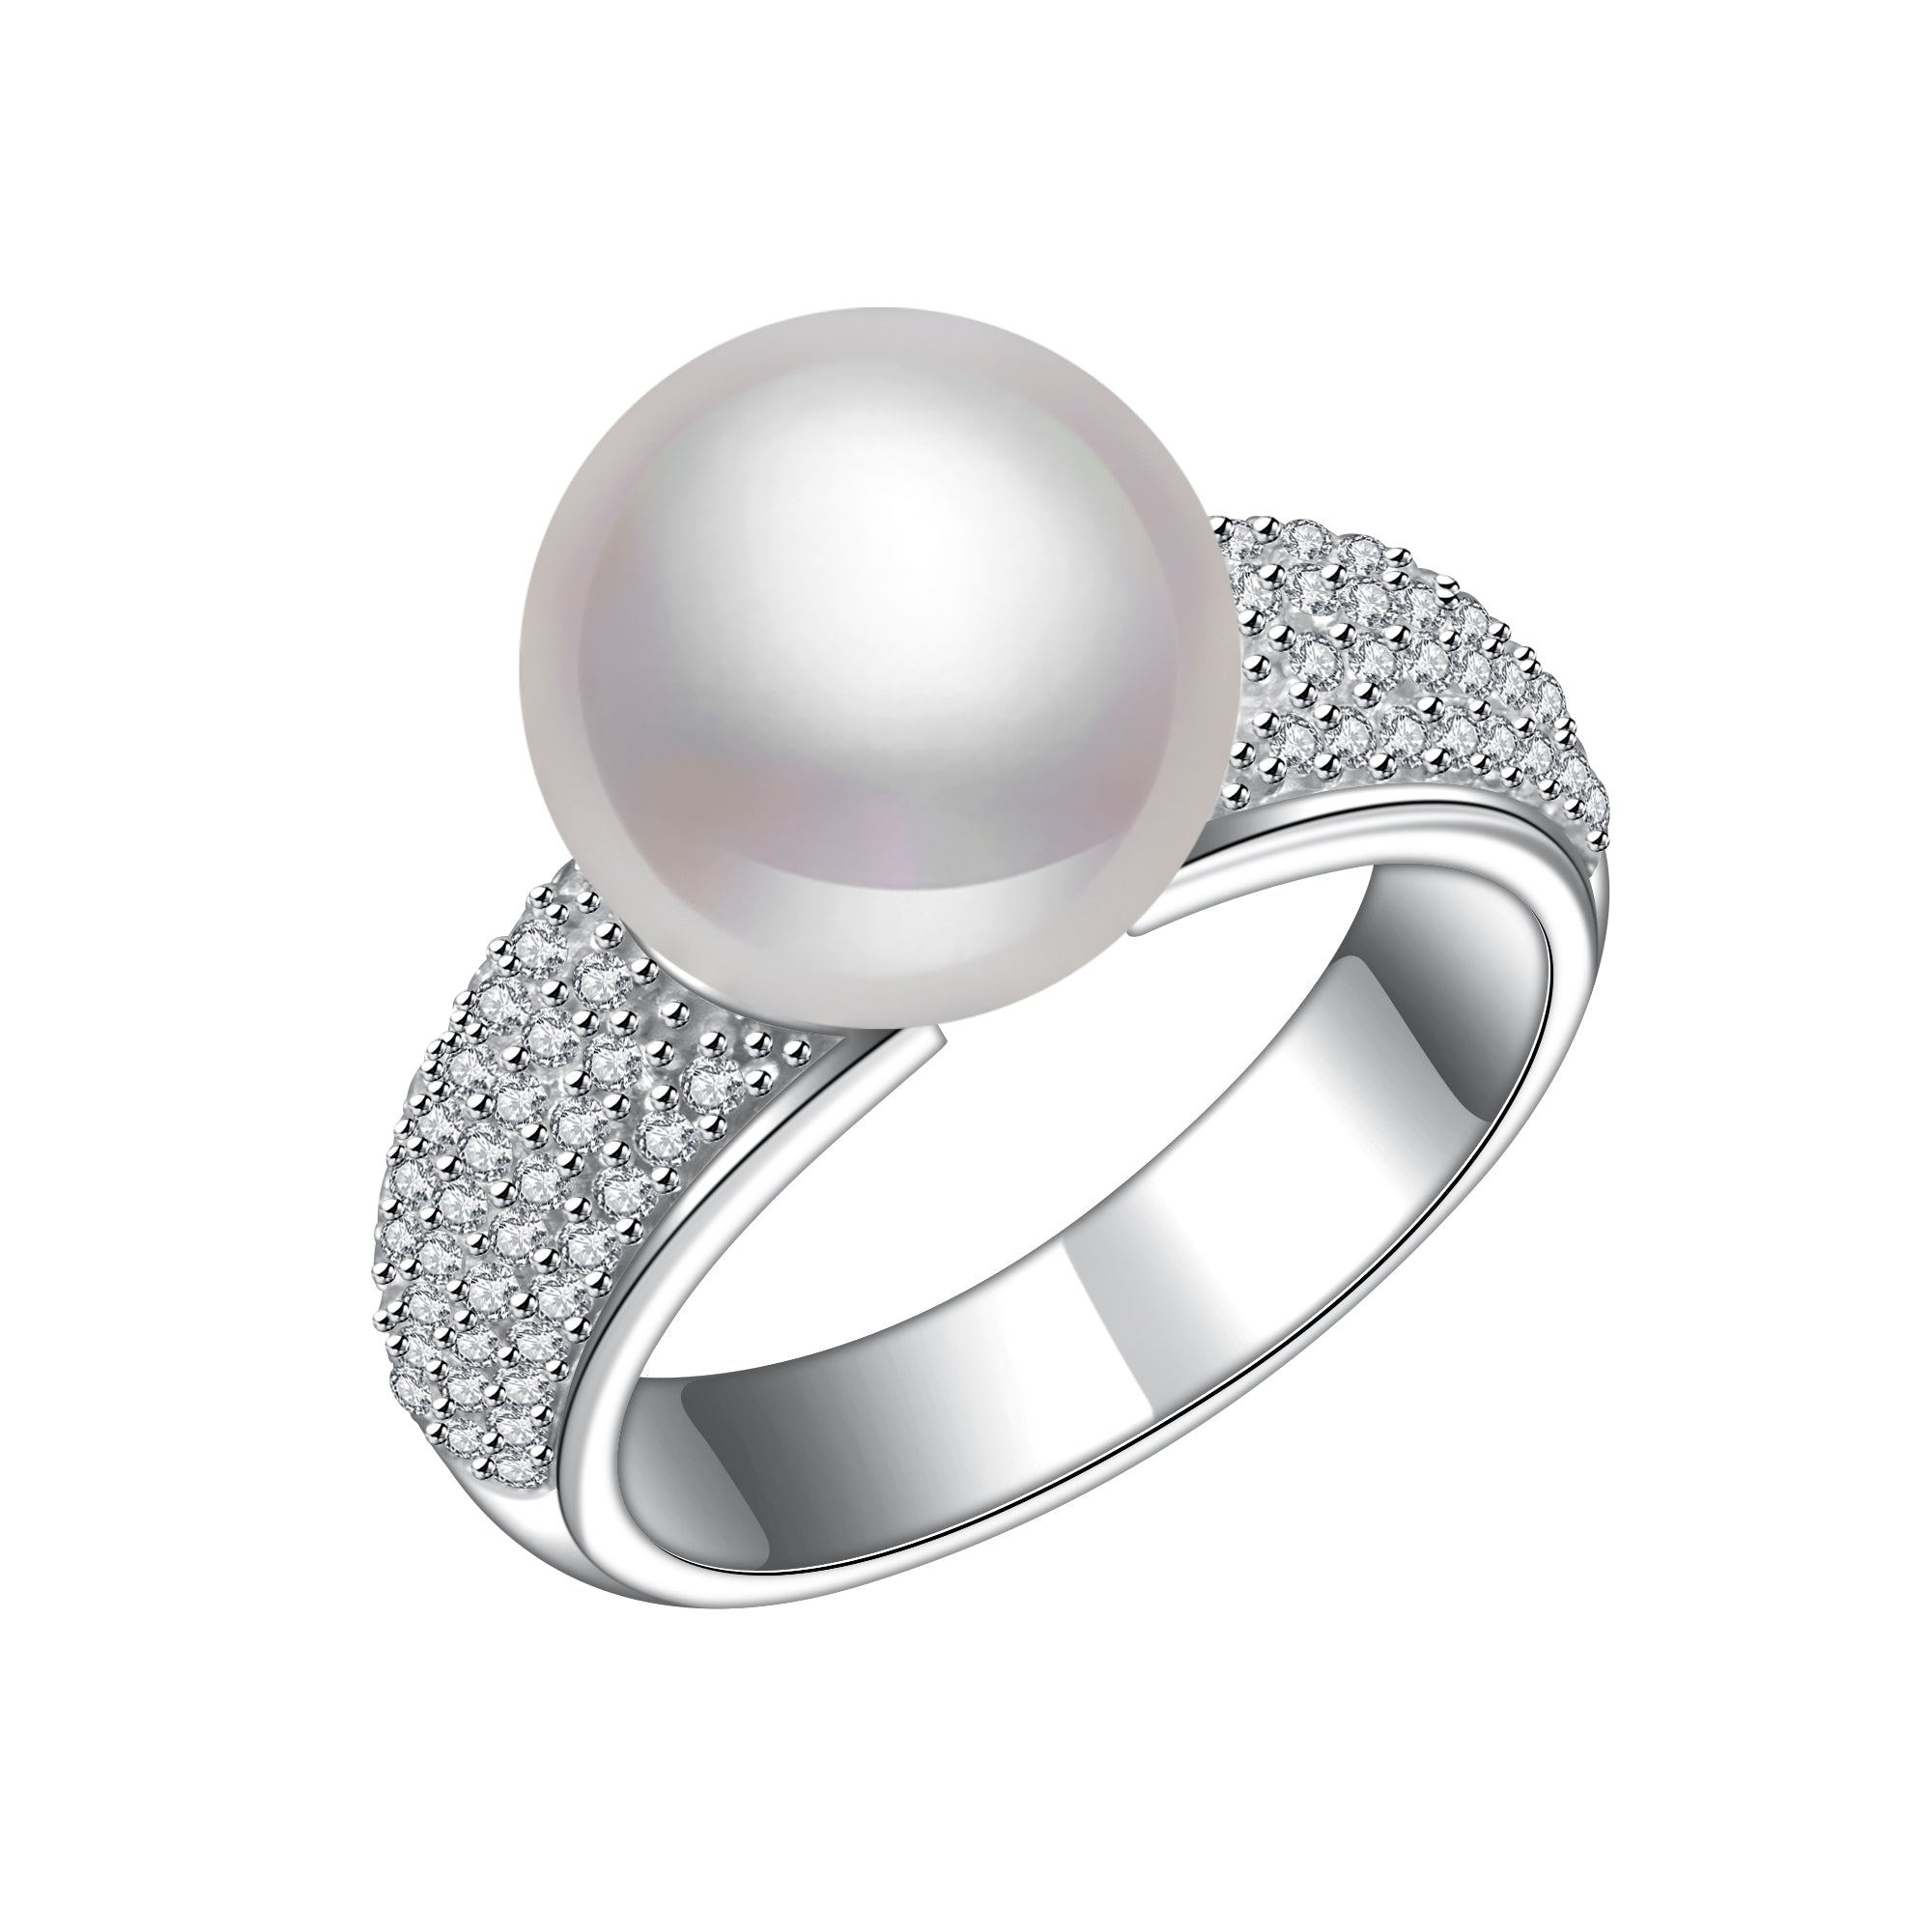 enlarged pearls pearl rings ring the how find right jeweler blog freshwater your canada ca engagement only choose to